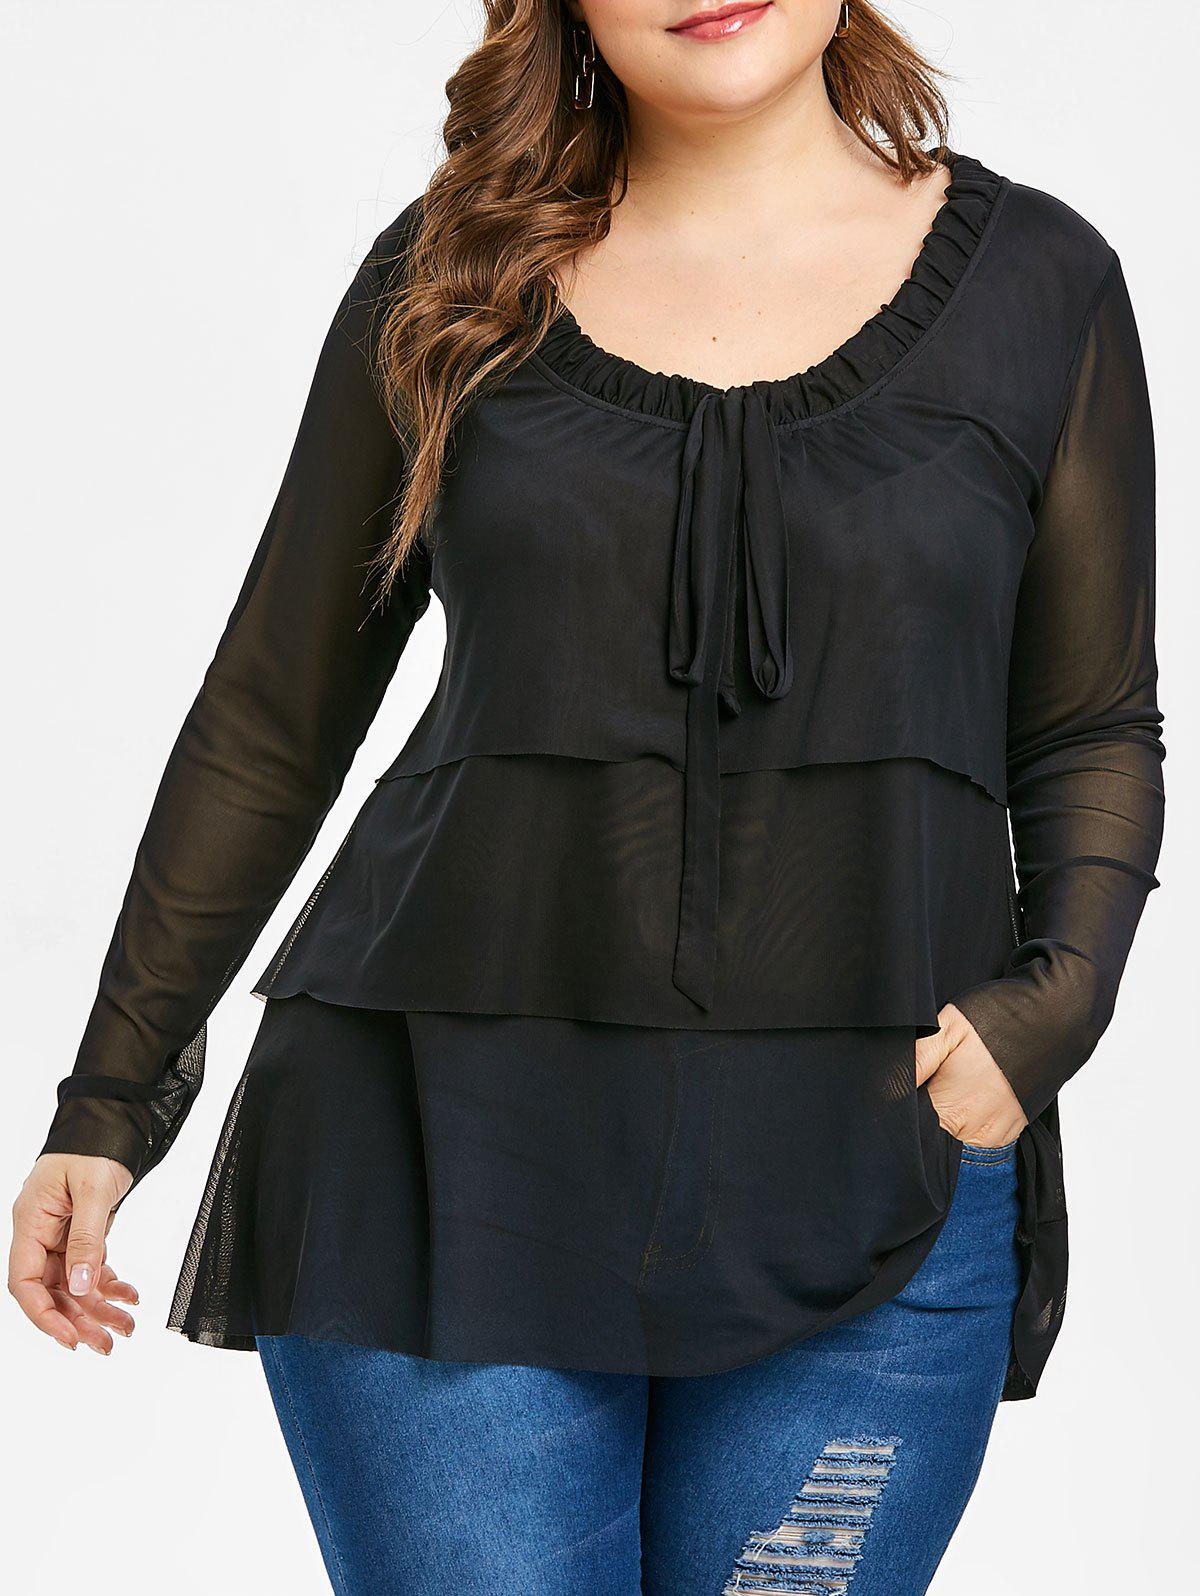 Fancy Plus Size Bow Tie Layered See Through Blouse